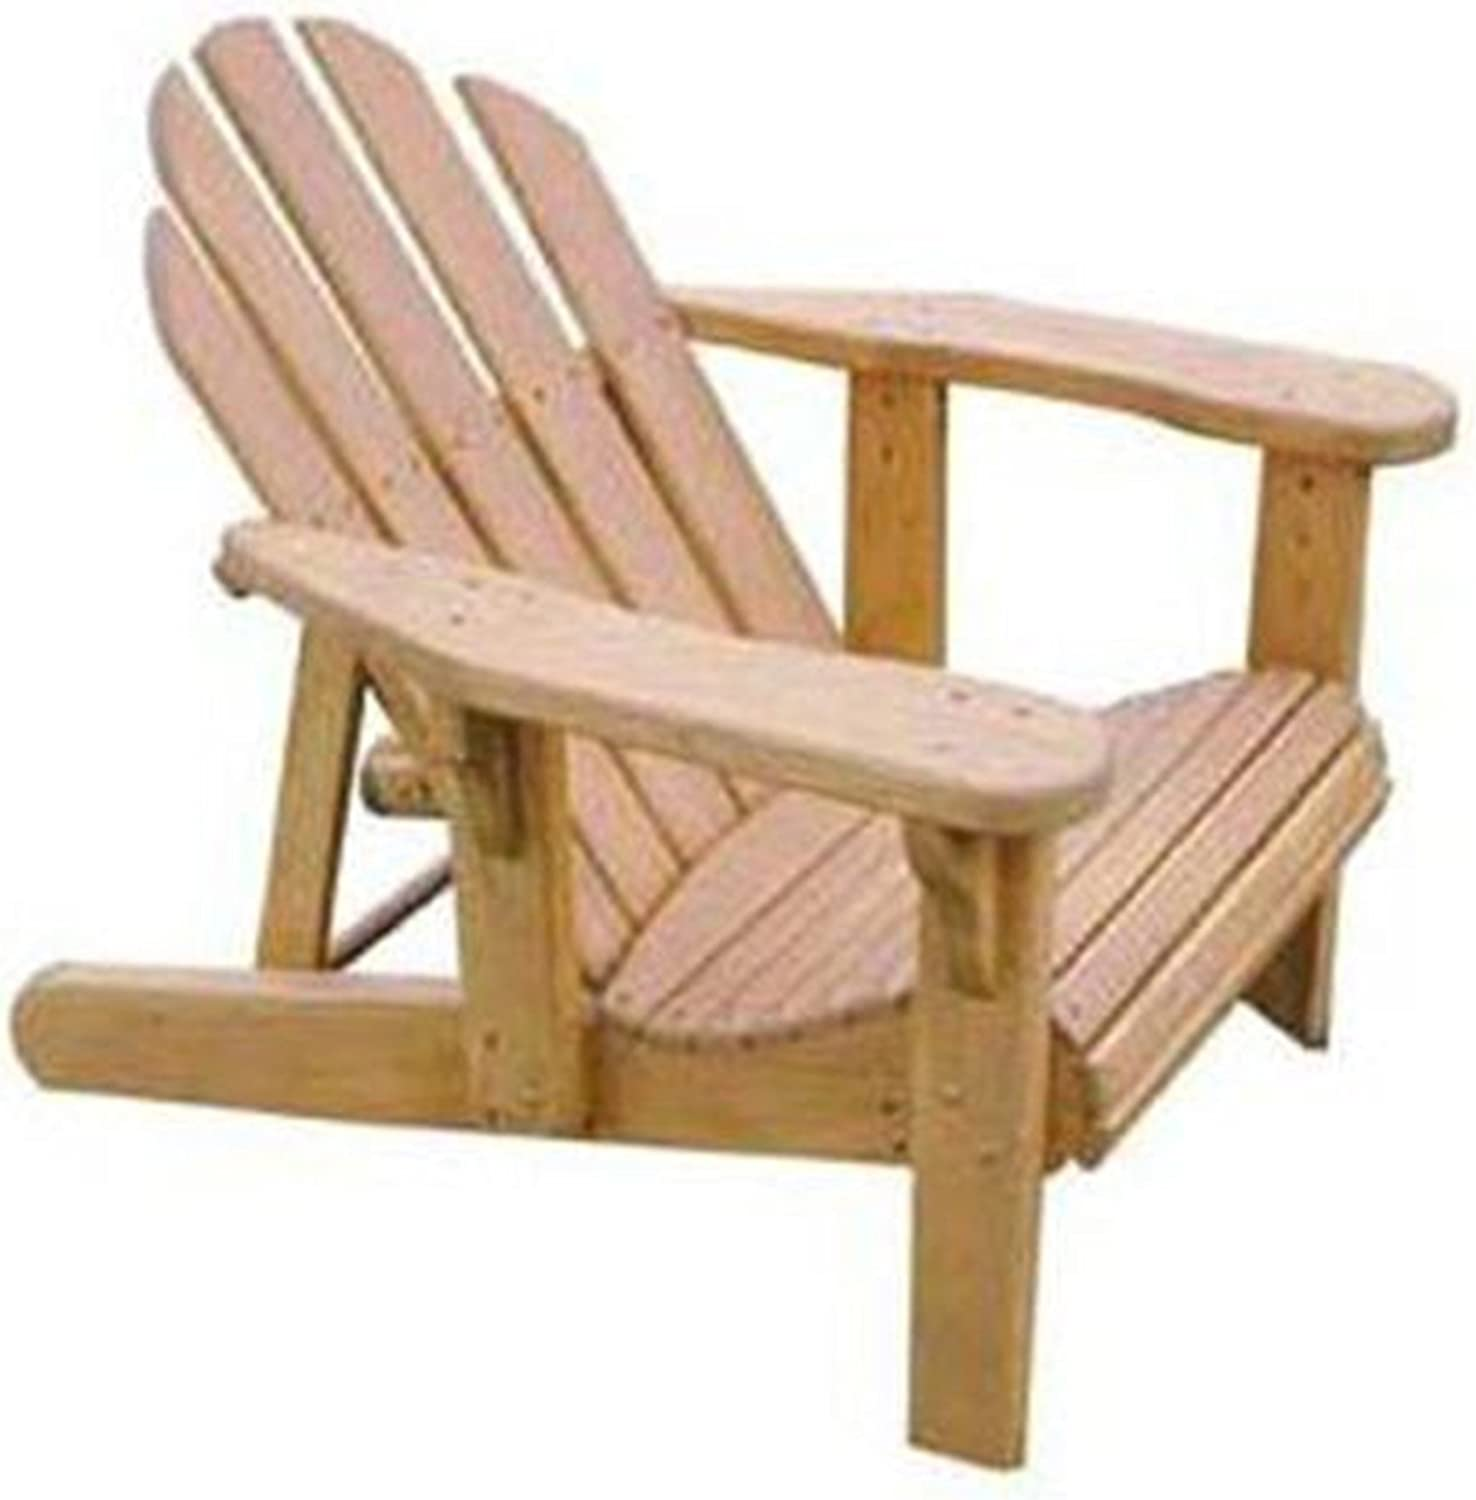 Woodworking Project Paper Plan to Build Adjustable Adirondack Chair - Outdoor Furniture Woodworking Project Plans -